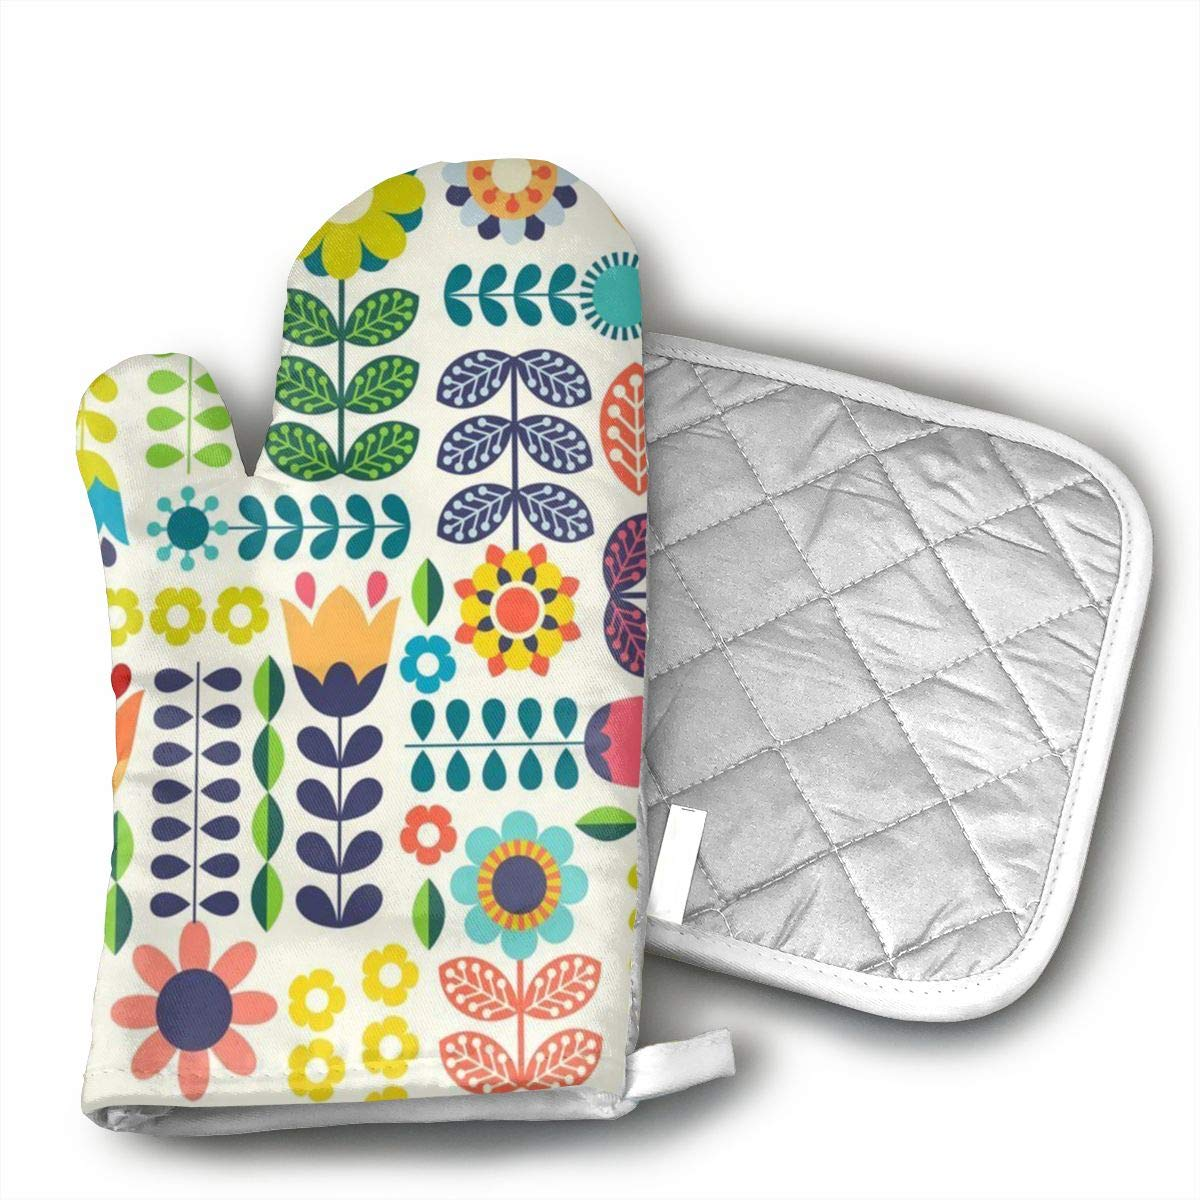 MEILVWEN Swedish Folk Art Colorway Oven Mitt and Pot Holder Set,Heat Resistant for Cooking and Baking Kitchen Gift